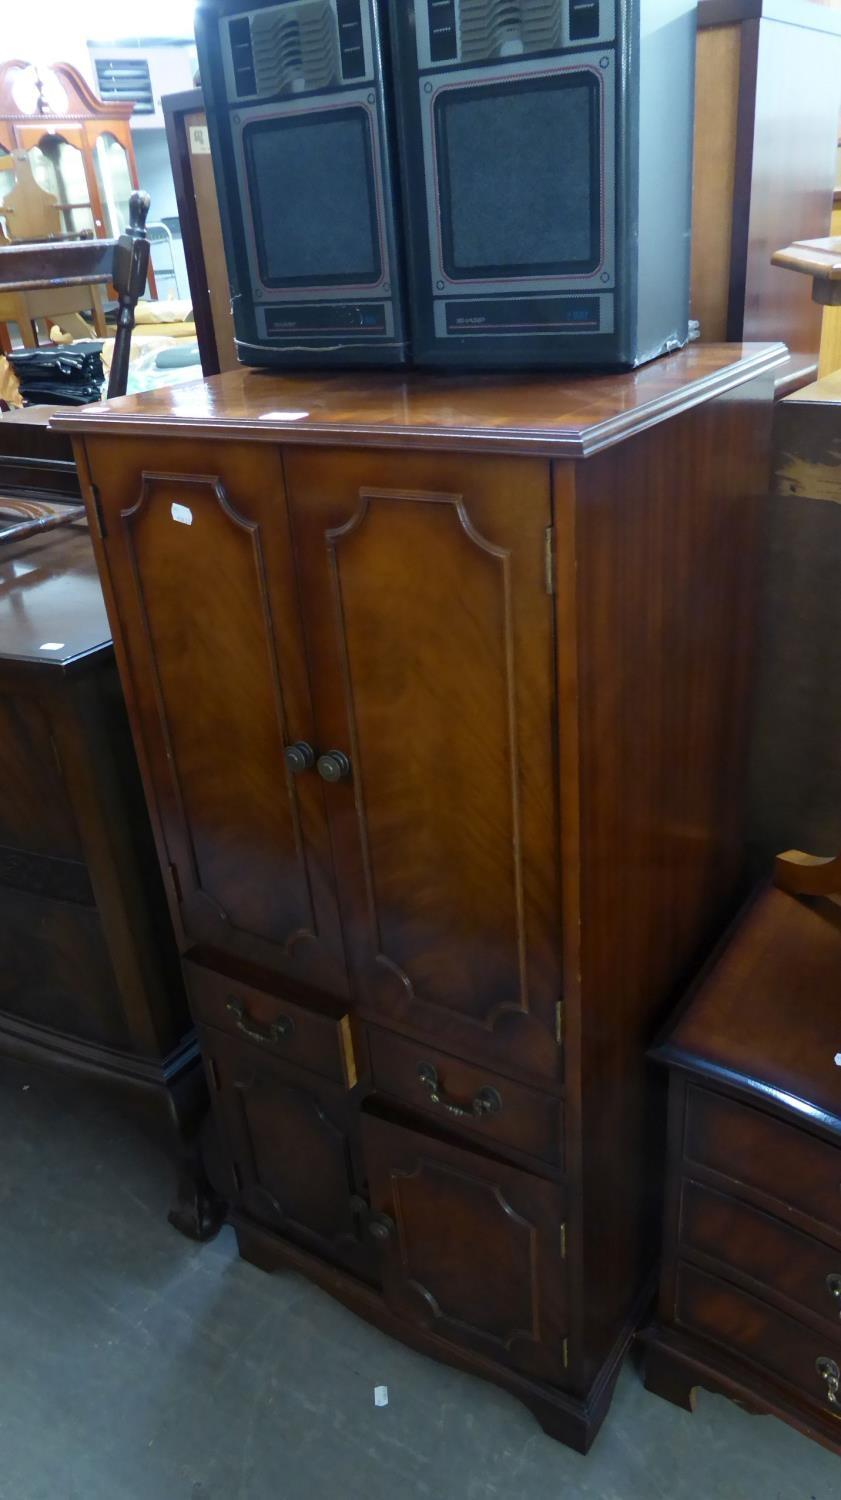 Lot 27 - GEORGIAN STYLE MAHOGANY TWO DOOR HI-FI CABINET WITH LIFT UP TOP, TWO DOORS OVER TWO DRAWERS AND